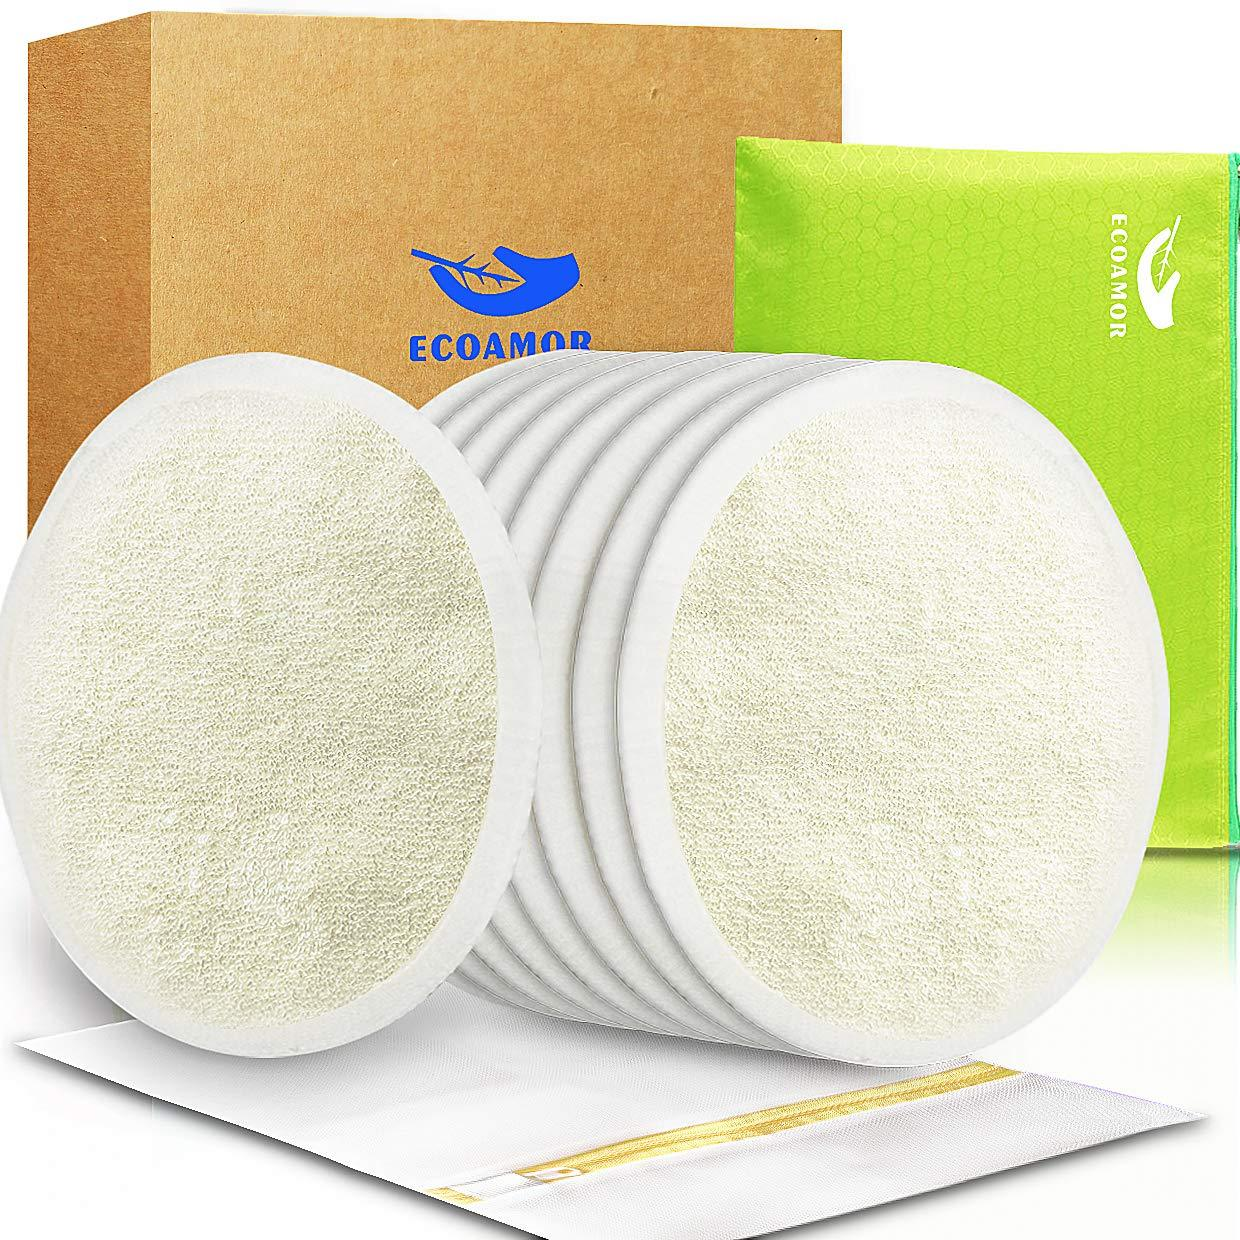 Click here to buy ECOAMOR Bamboo Washable Reusable Bra Nursing Pads with leak-proof backing for Breastfeeding,8 Pack + Laundry... by ECOAMOR.